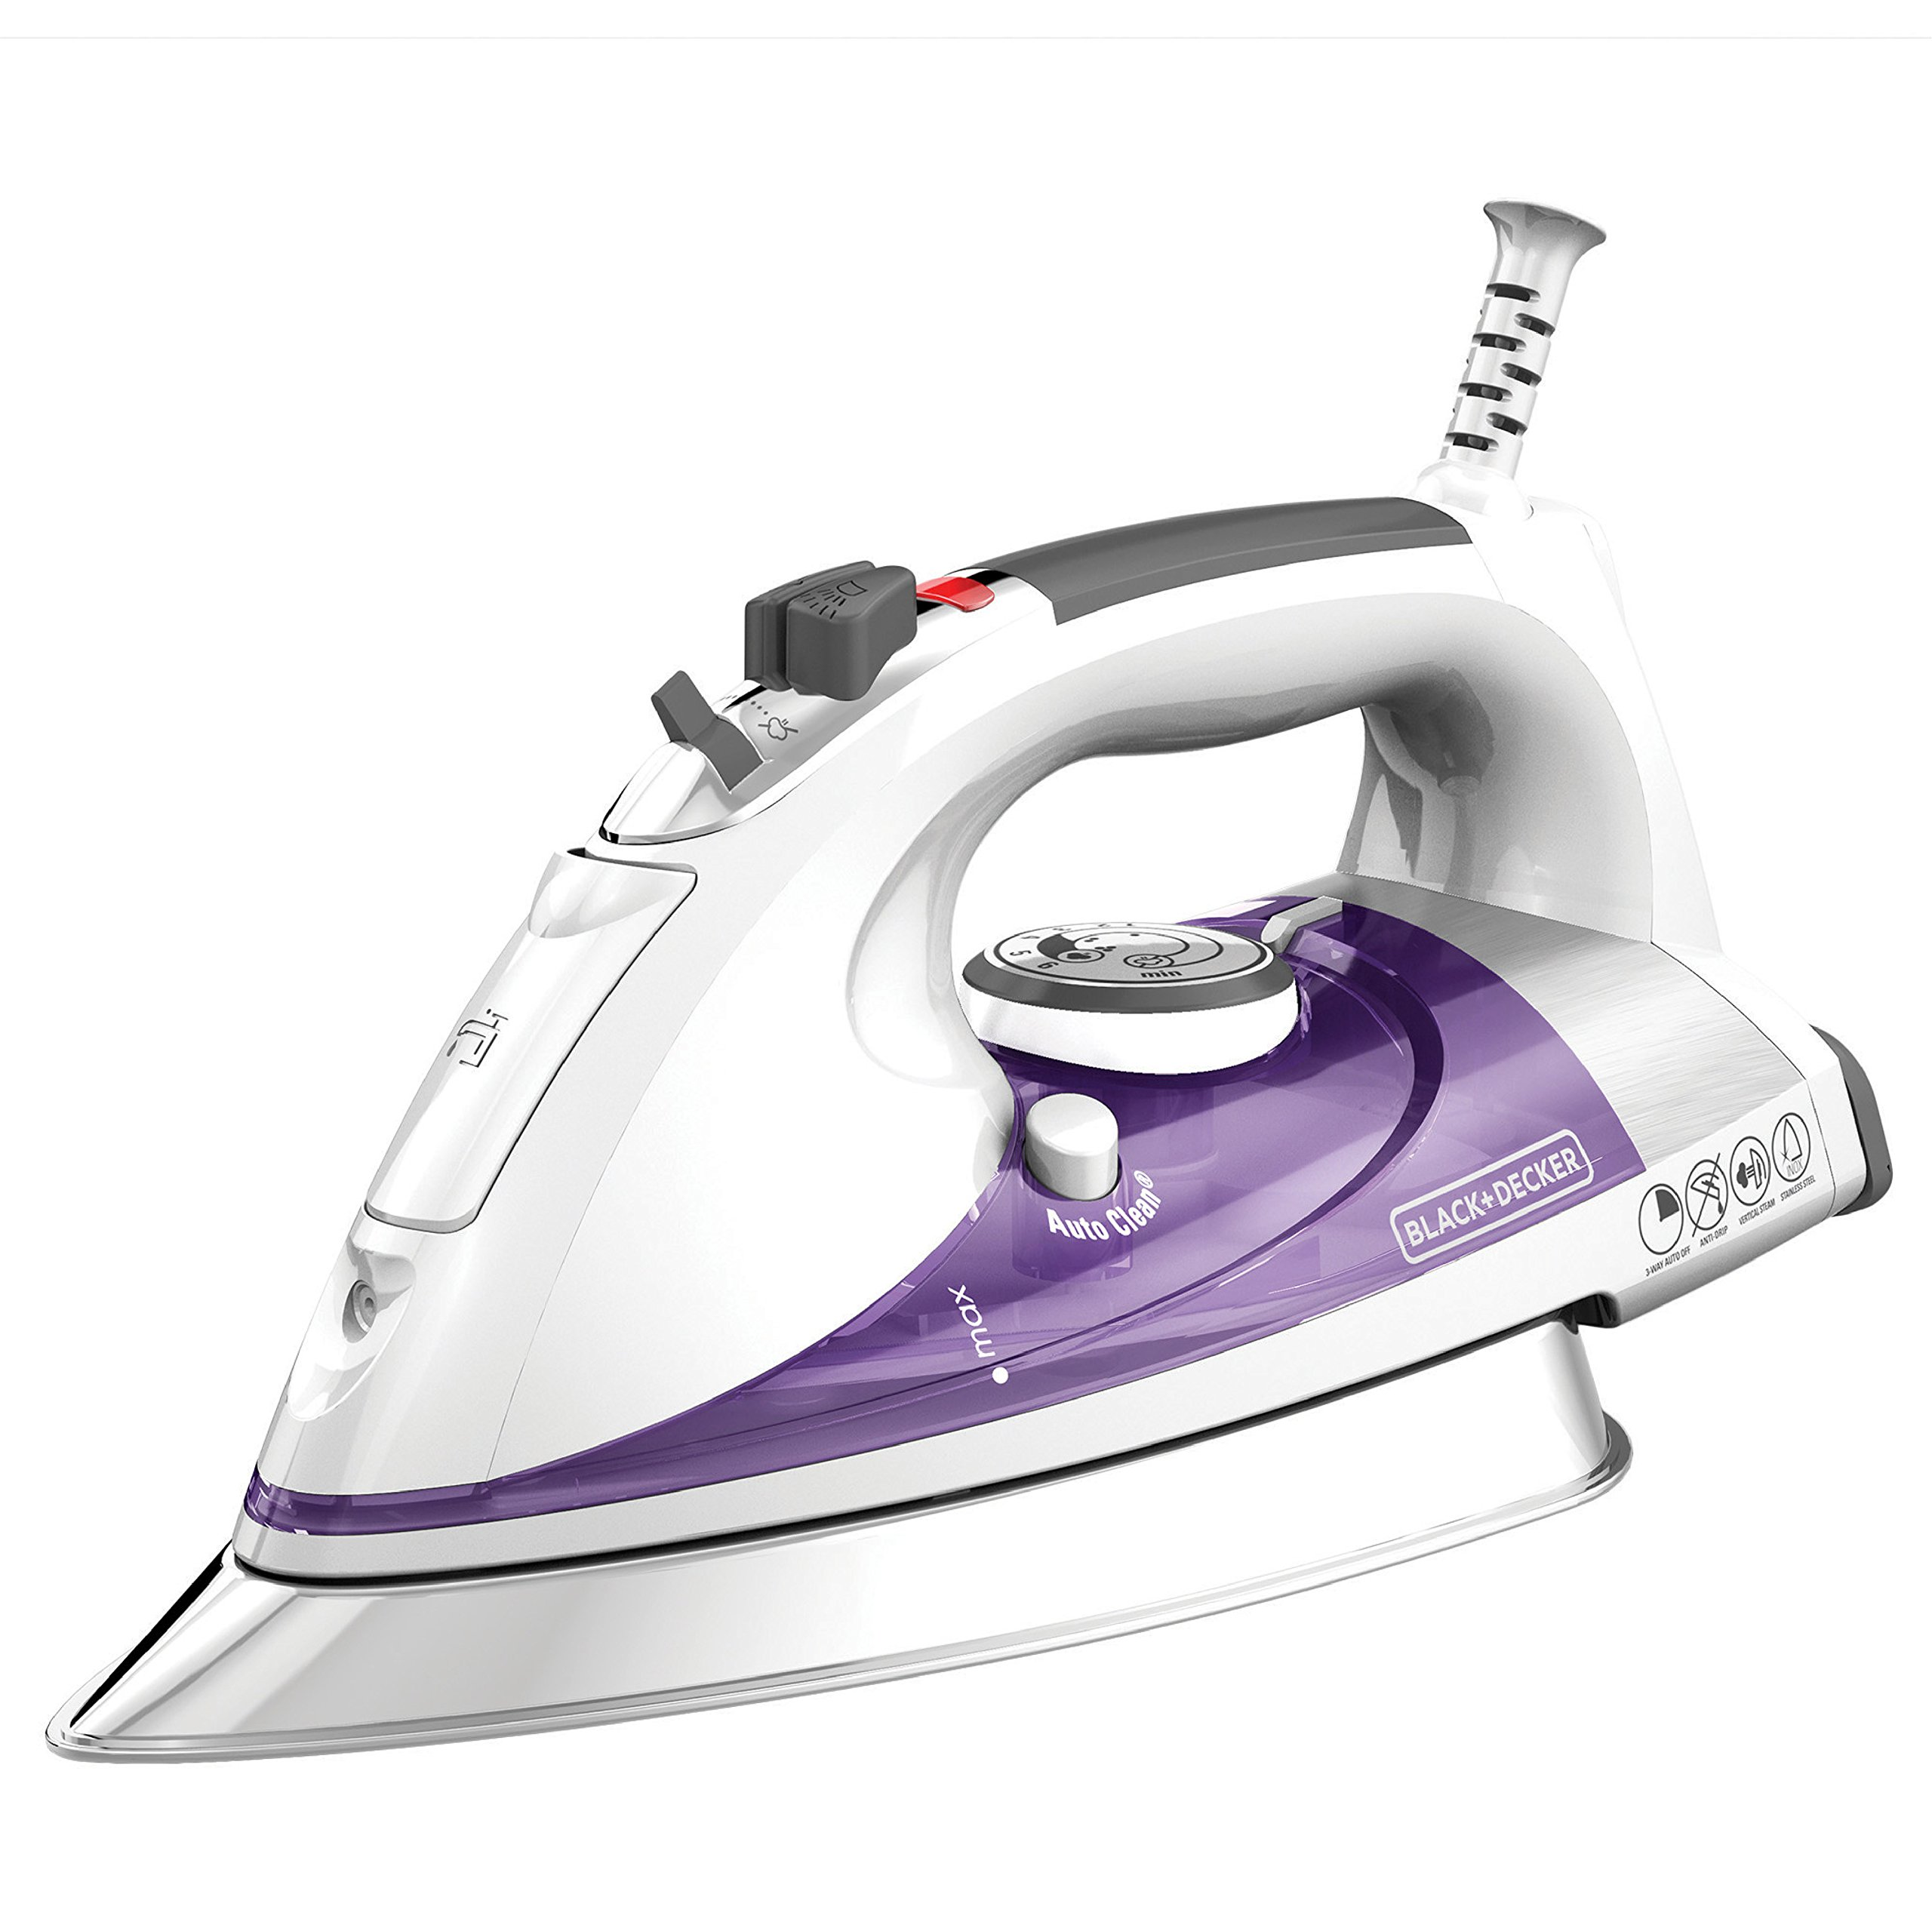 BLACK+DECKER Professional Steam Iron with Extra Large Soleplate, Purple, IR1350S by BLACK+DECKER